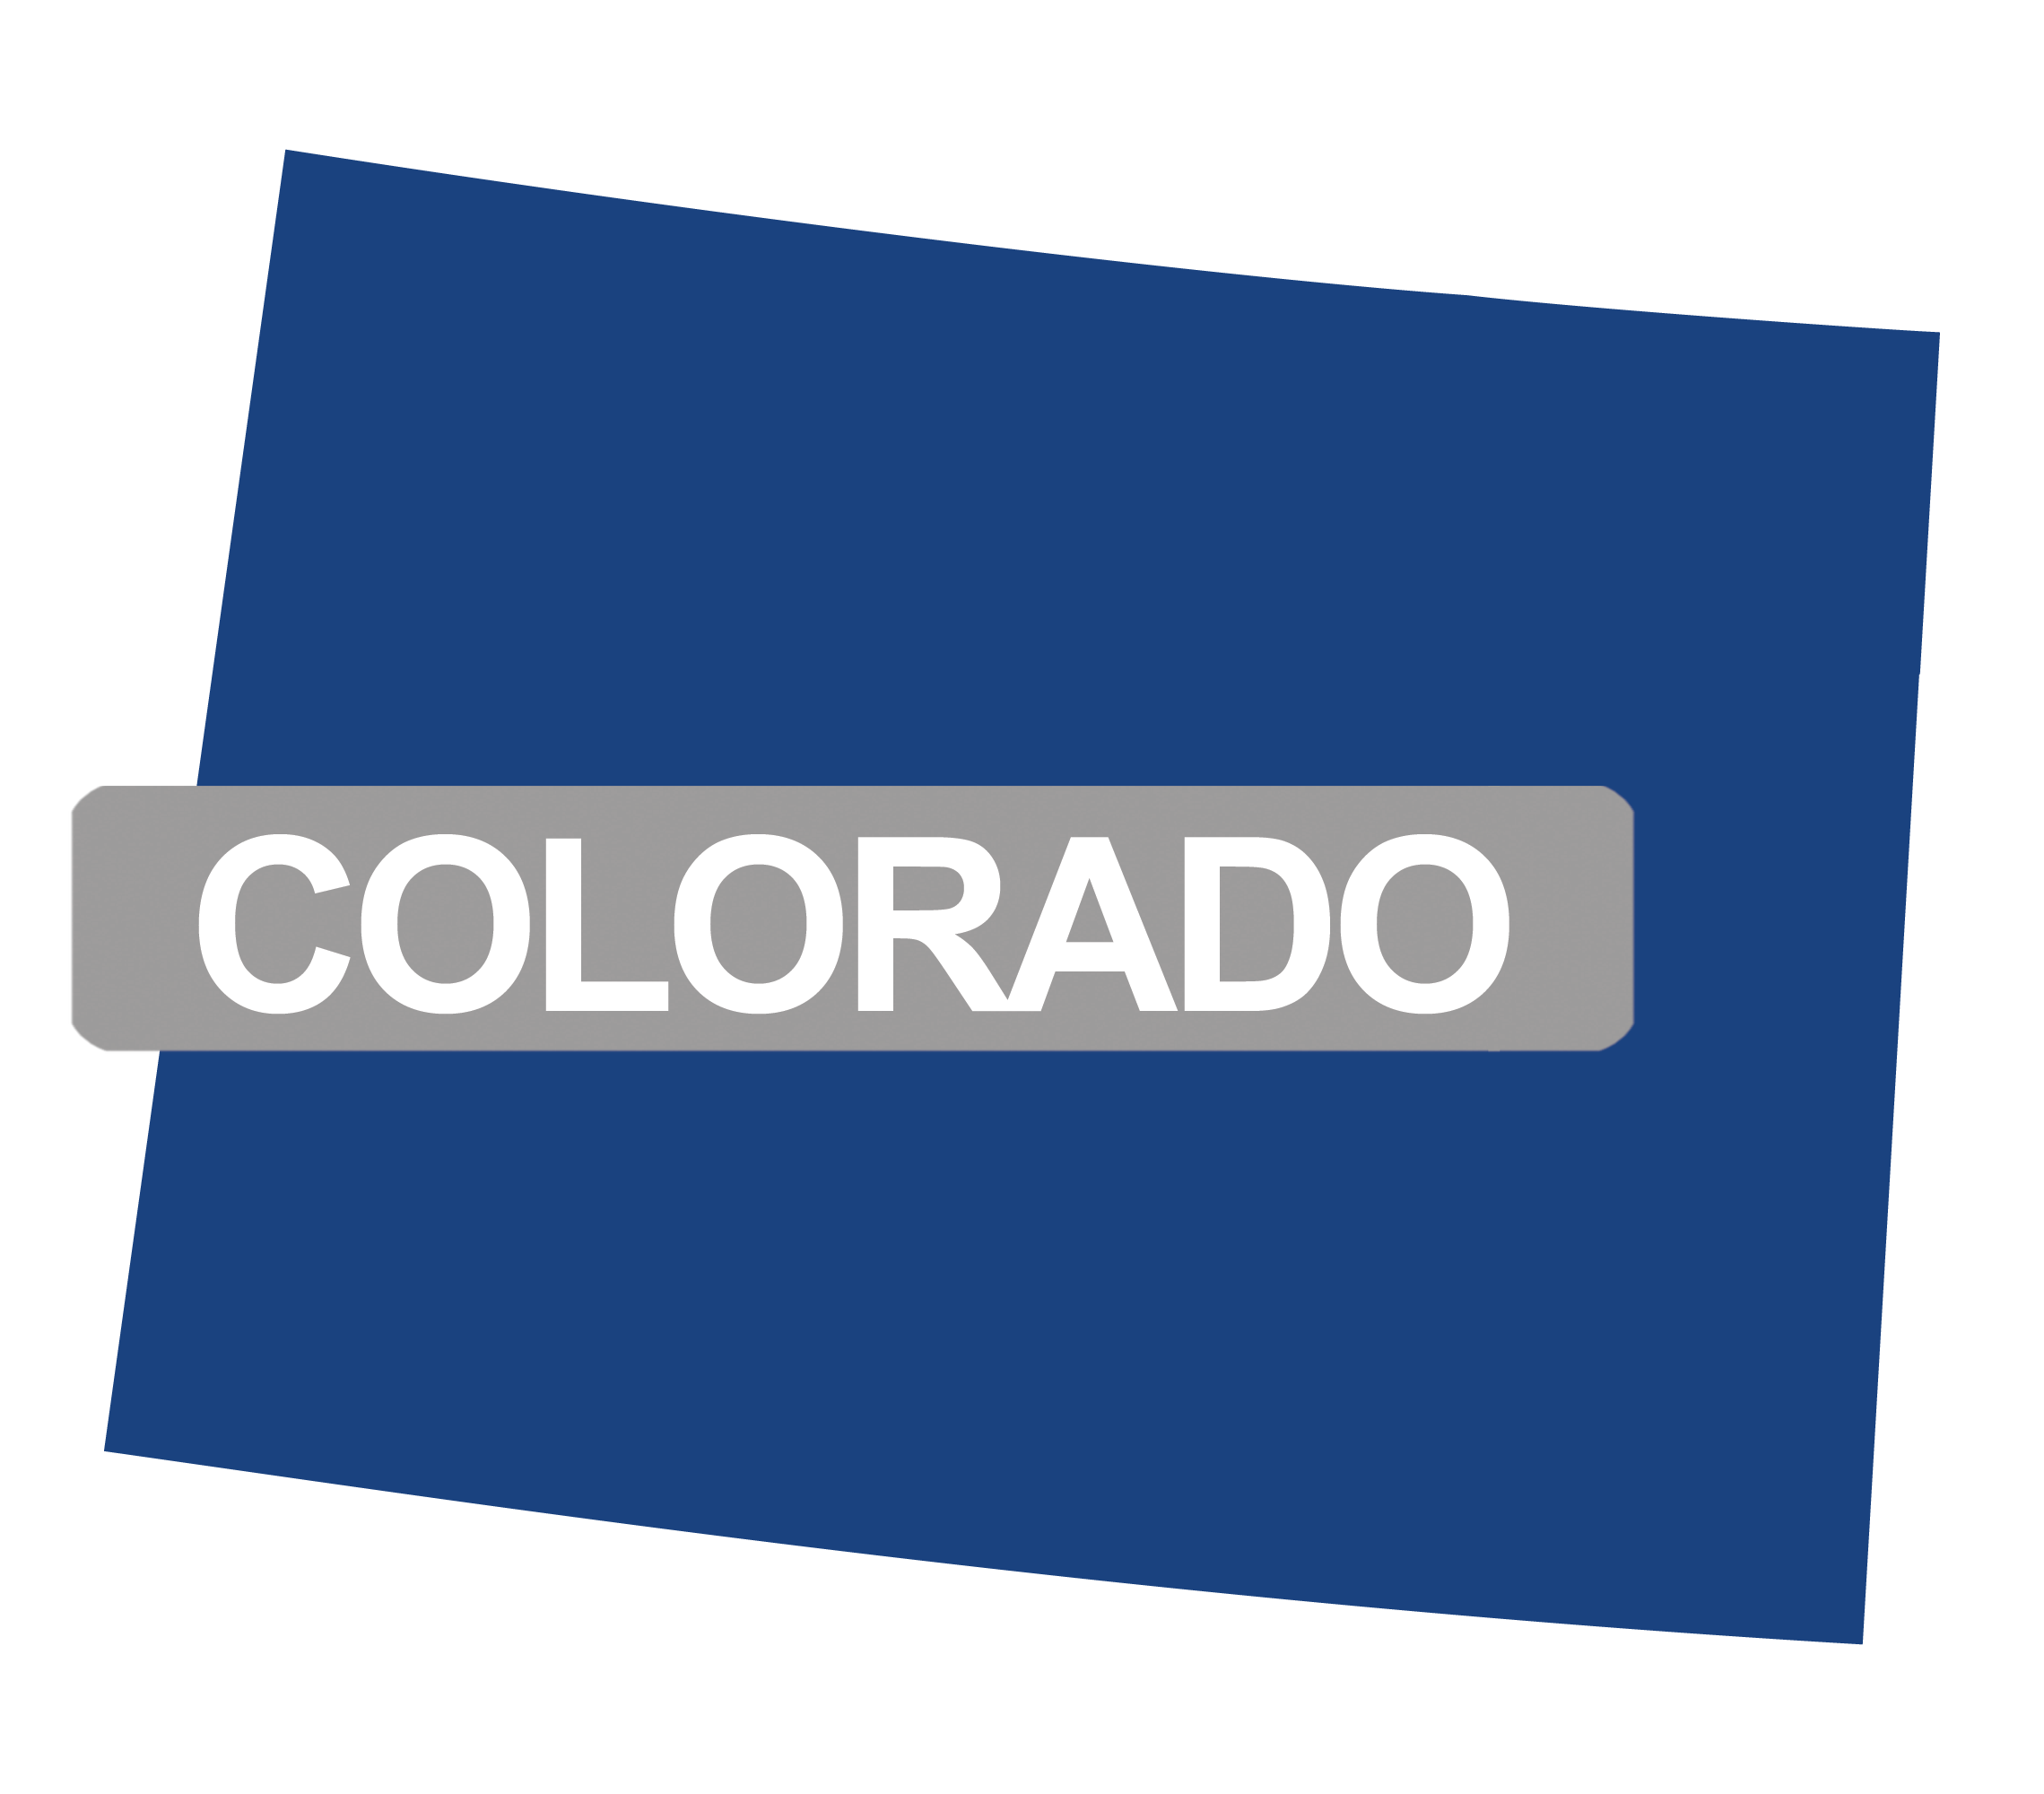 Colorado Electrical Continuing Education for Journeyman, Master Electricians, and Electrical Contractors